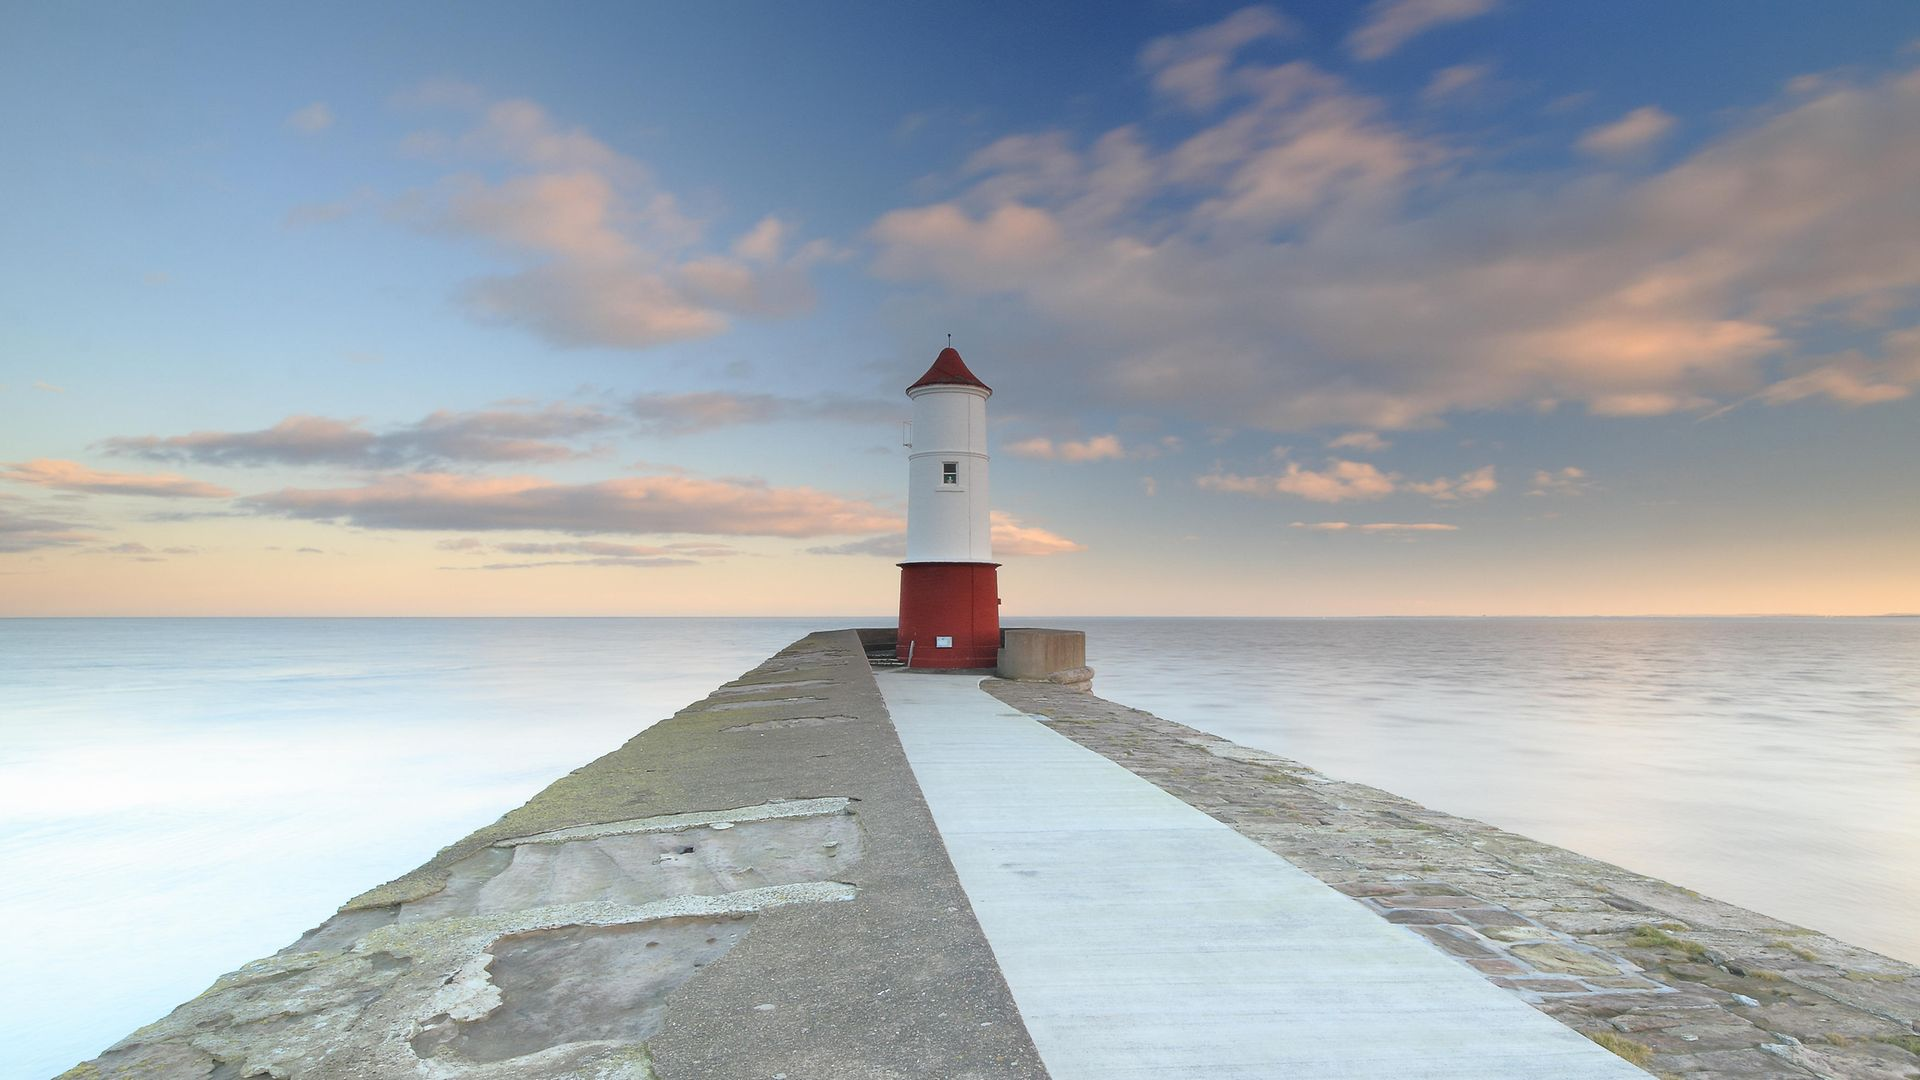 DISPUTED WATERS: Berwick lighthouse, from where an English-Scottish maritime border would begin - Credit: Getty Images/RooM RF